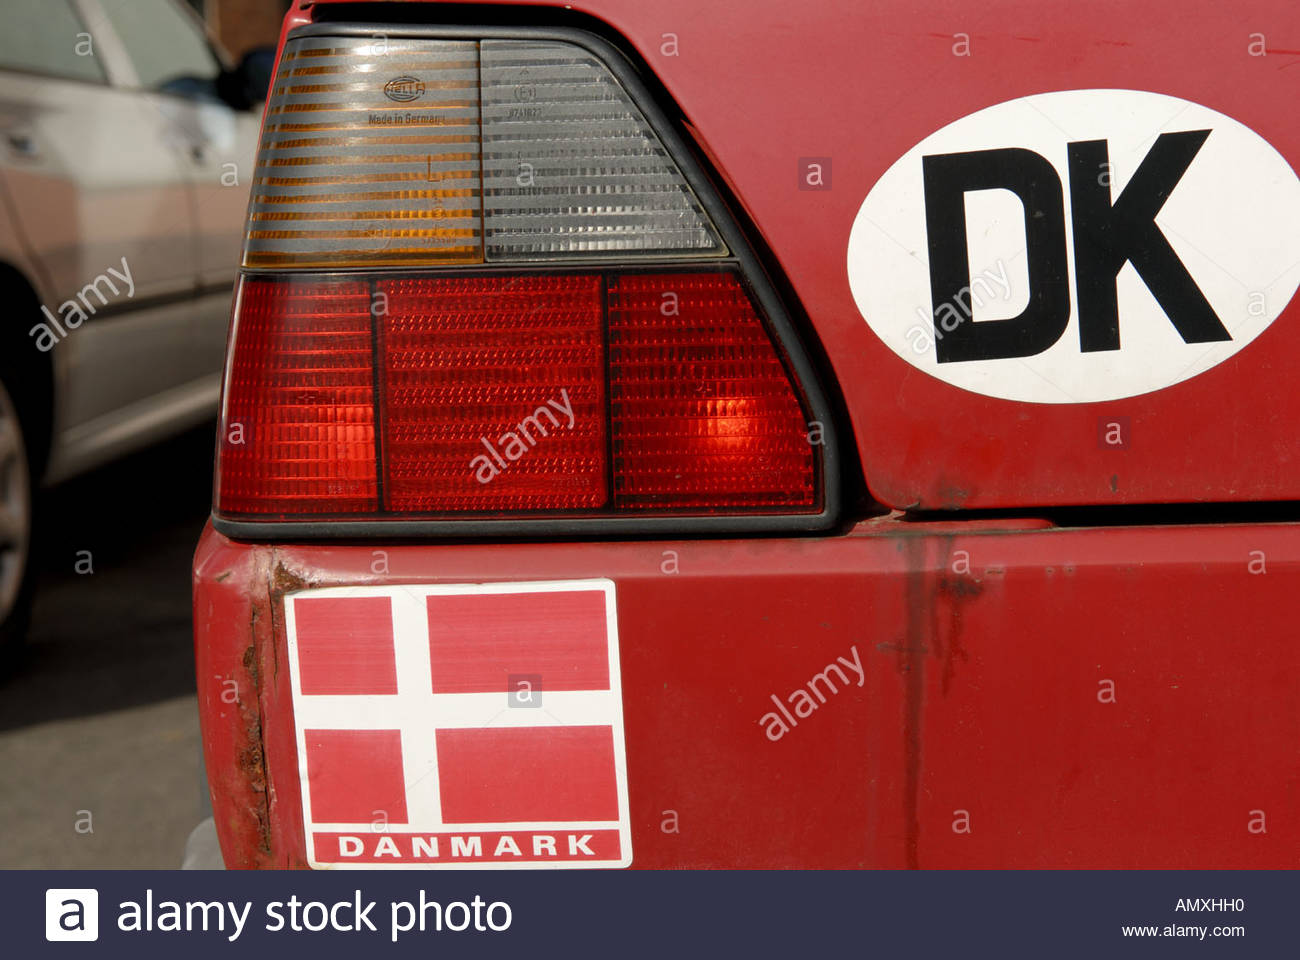 Rear of red car with DK sticker and the Danish flag Copenhagen Denmark - Stock Image